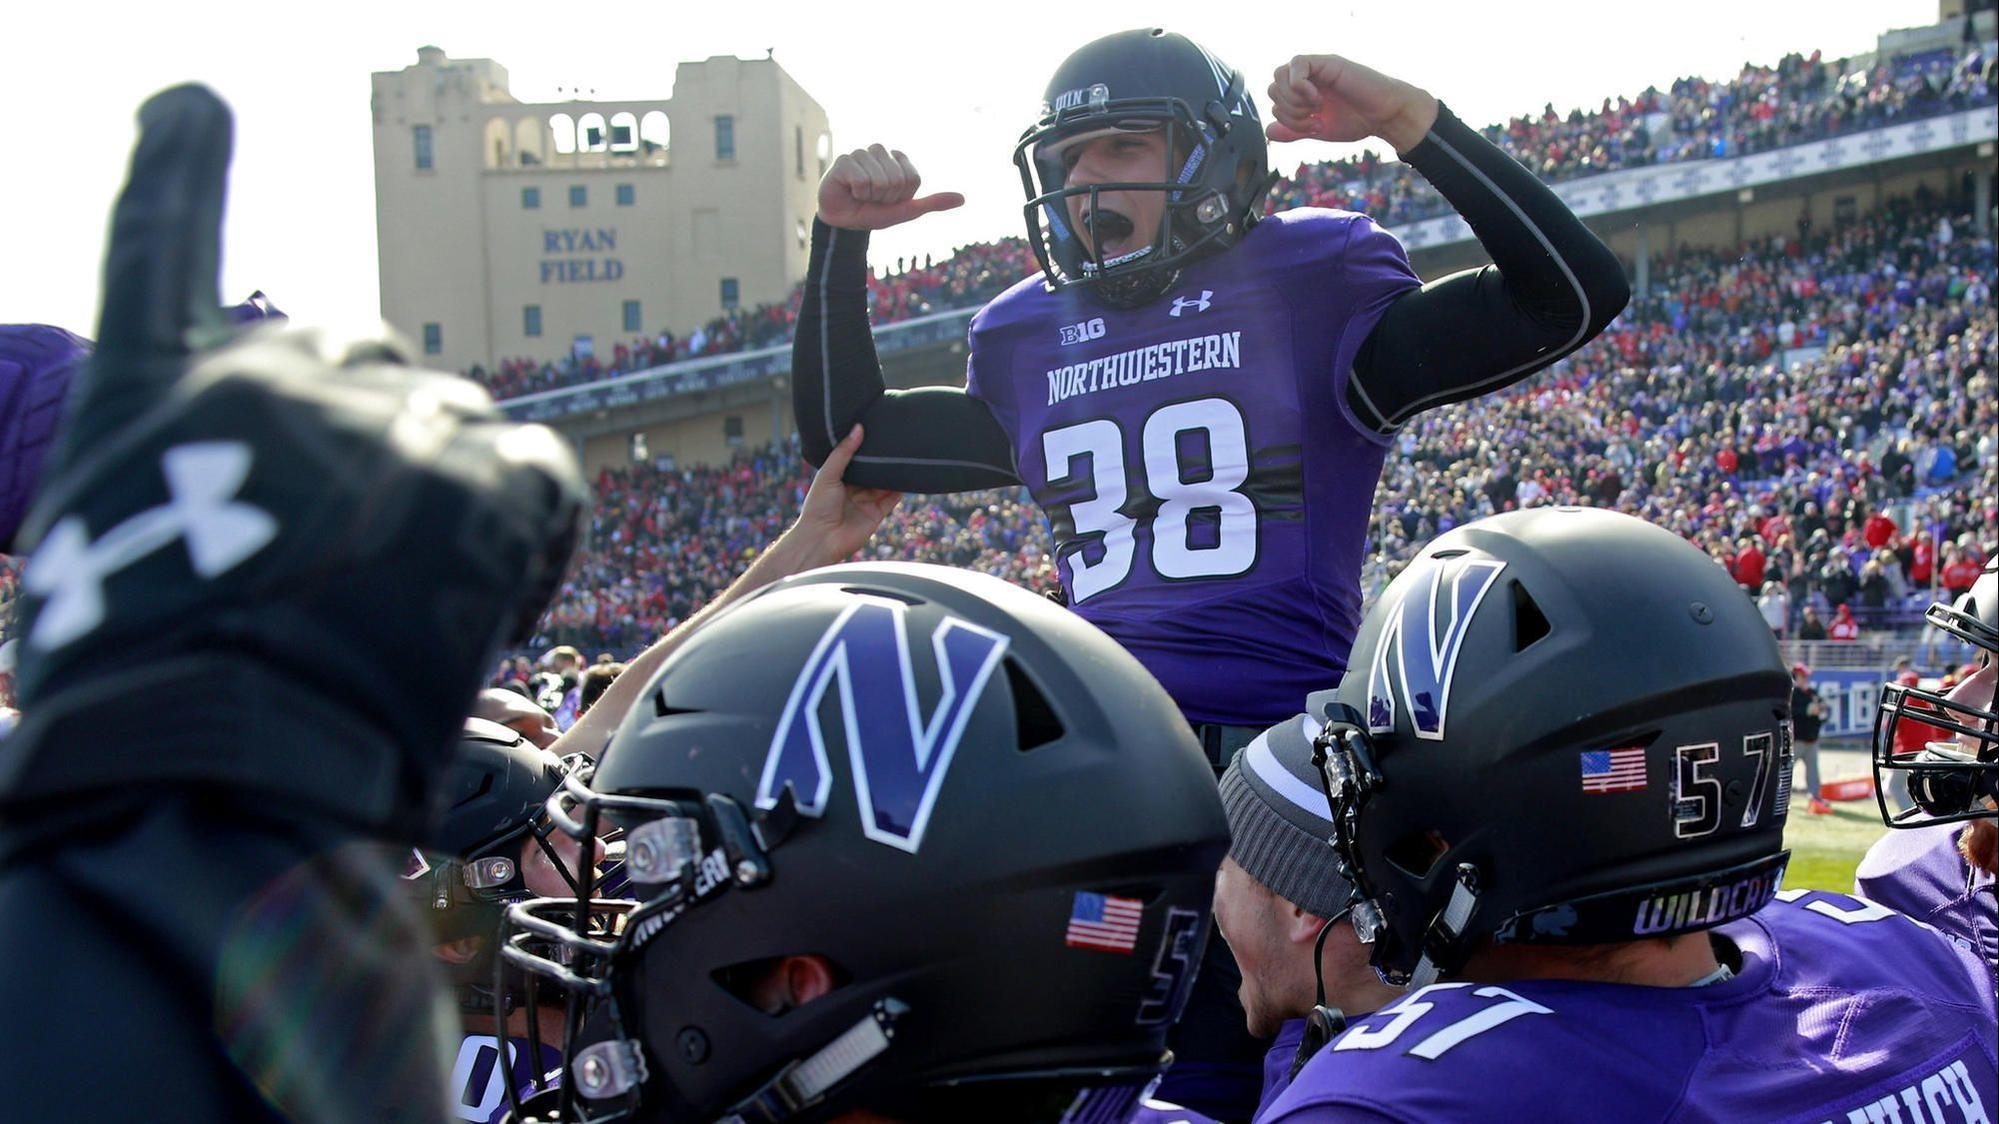 Ct-spt-nebraska-northwestern-20181013